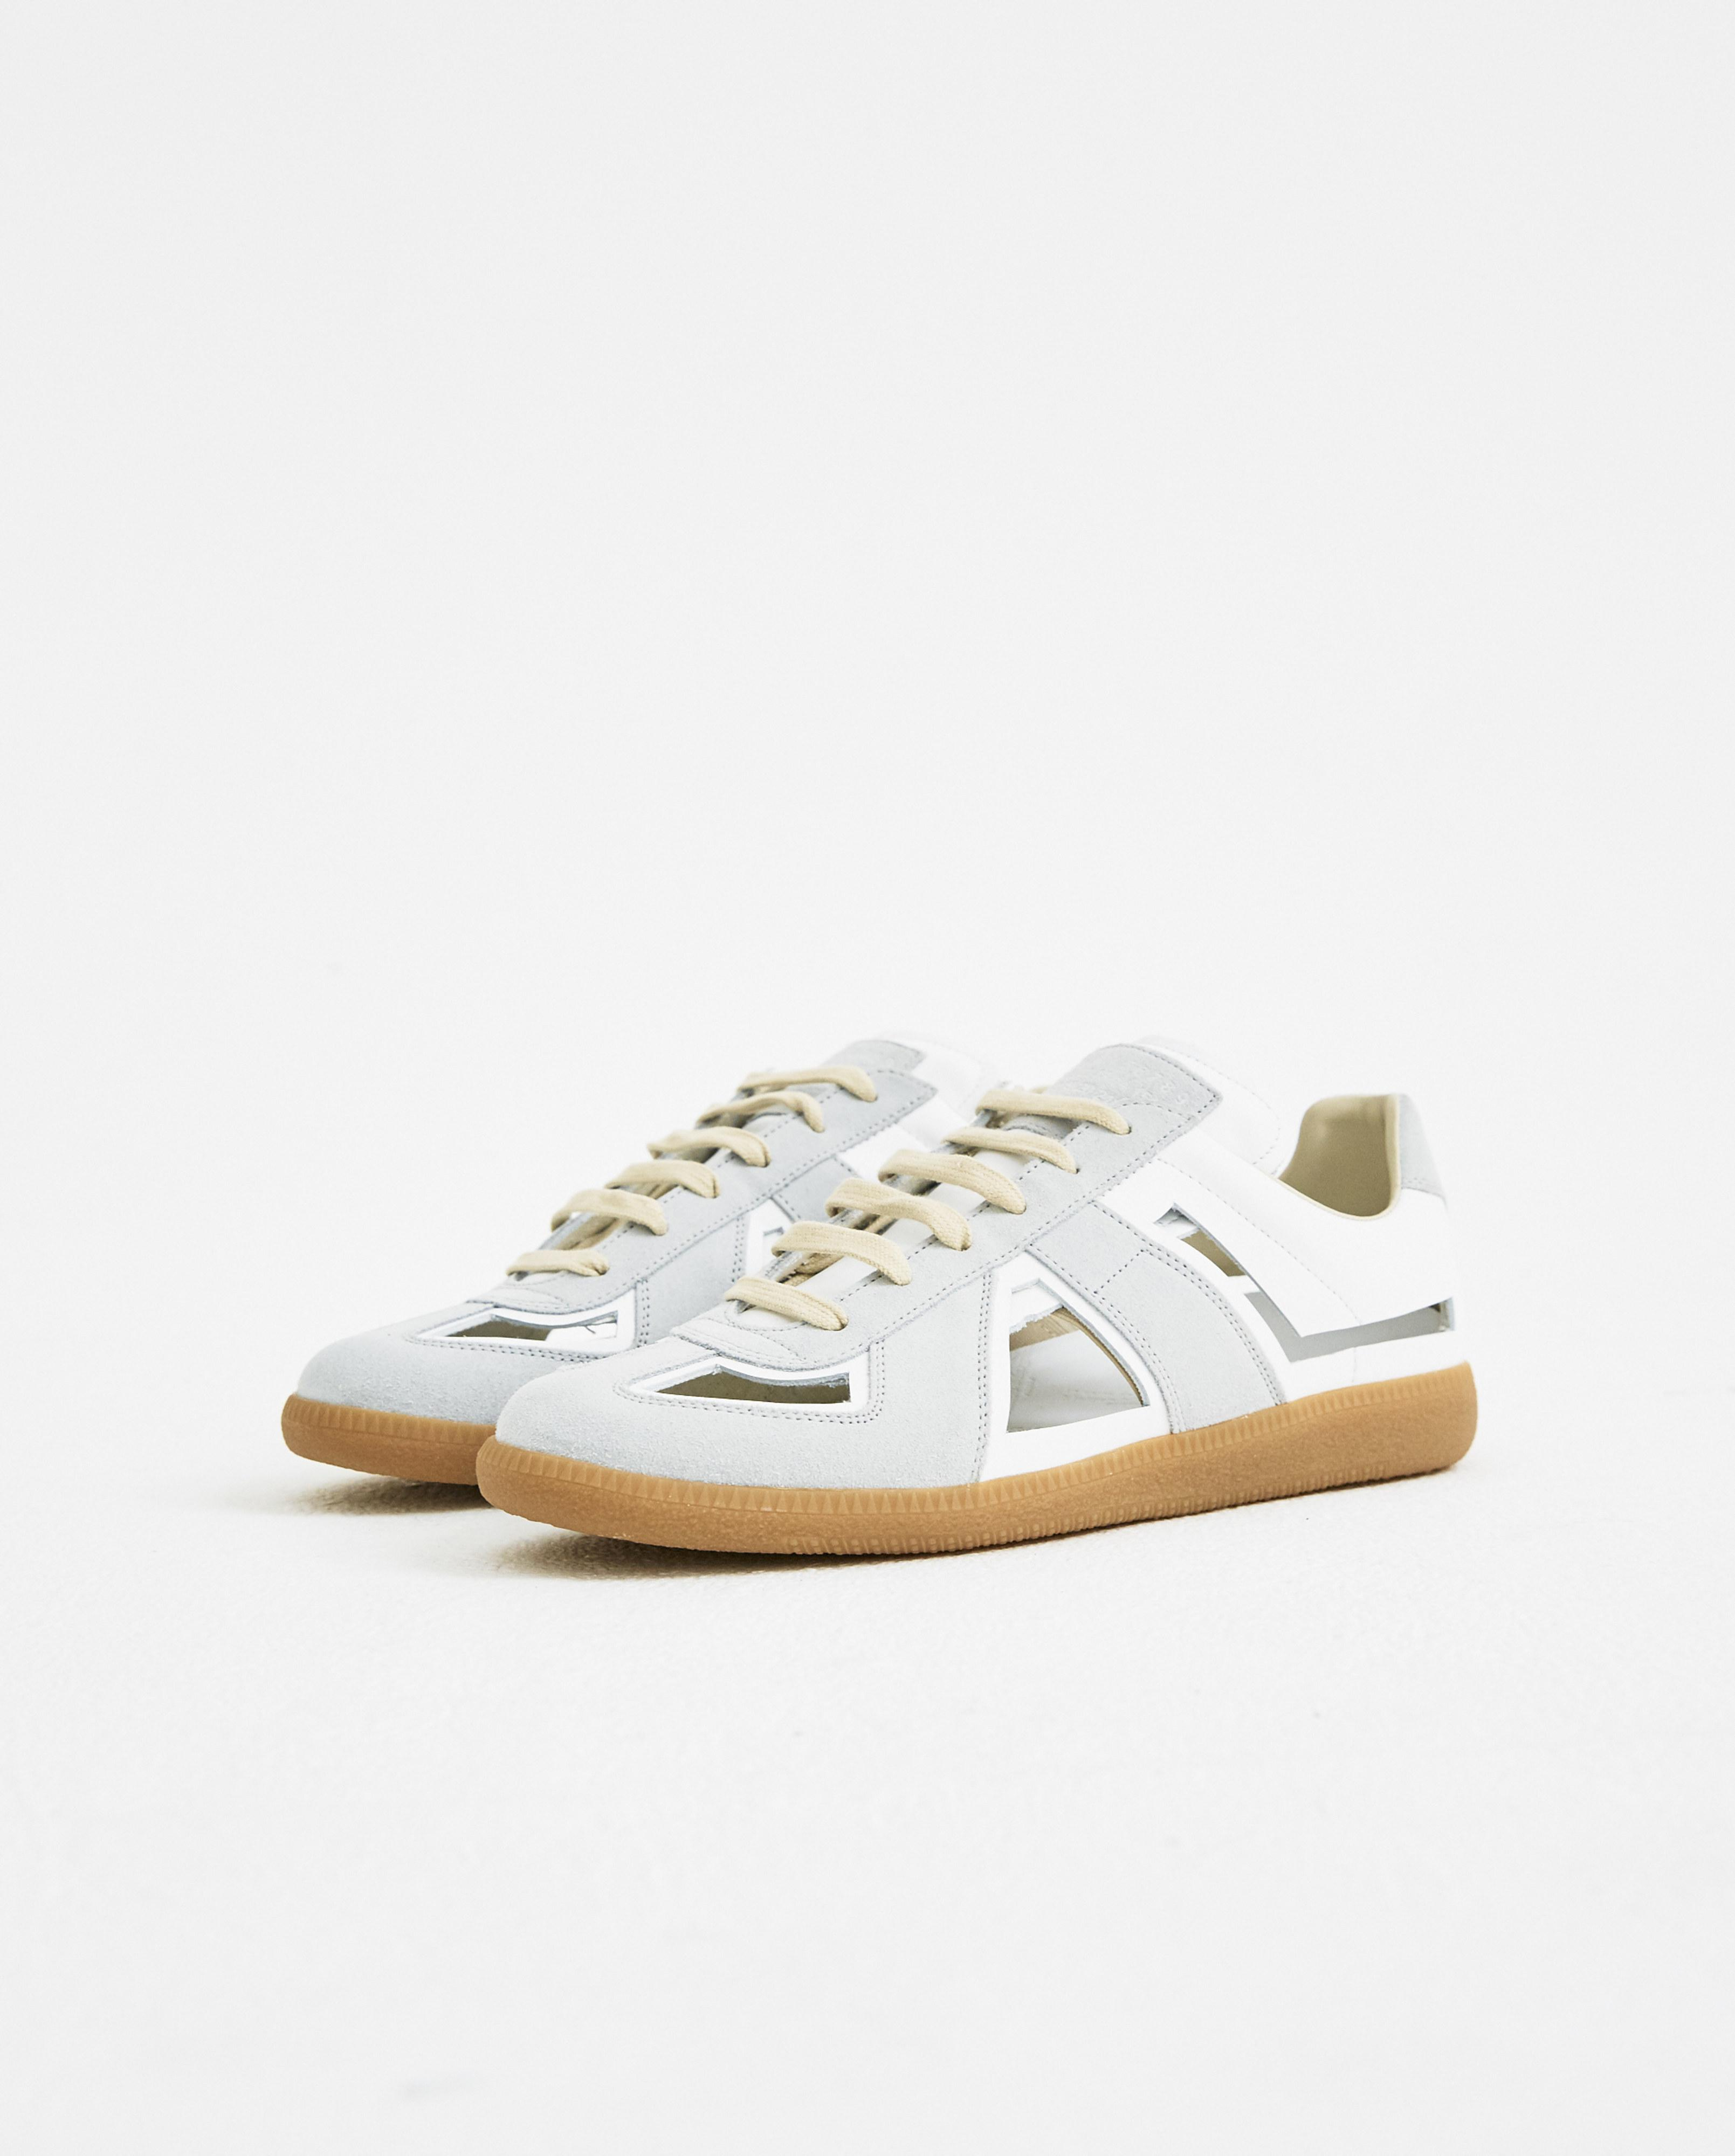 White and Grey Decortique Cut-Out Replica Sneakers Maison Martin Margiela LpNu88eEy